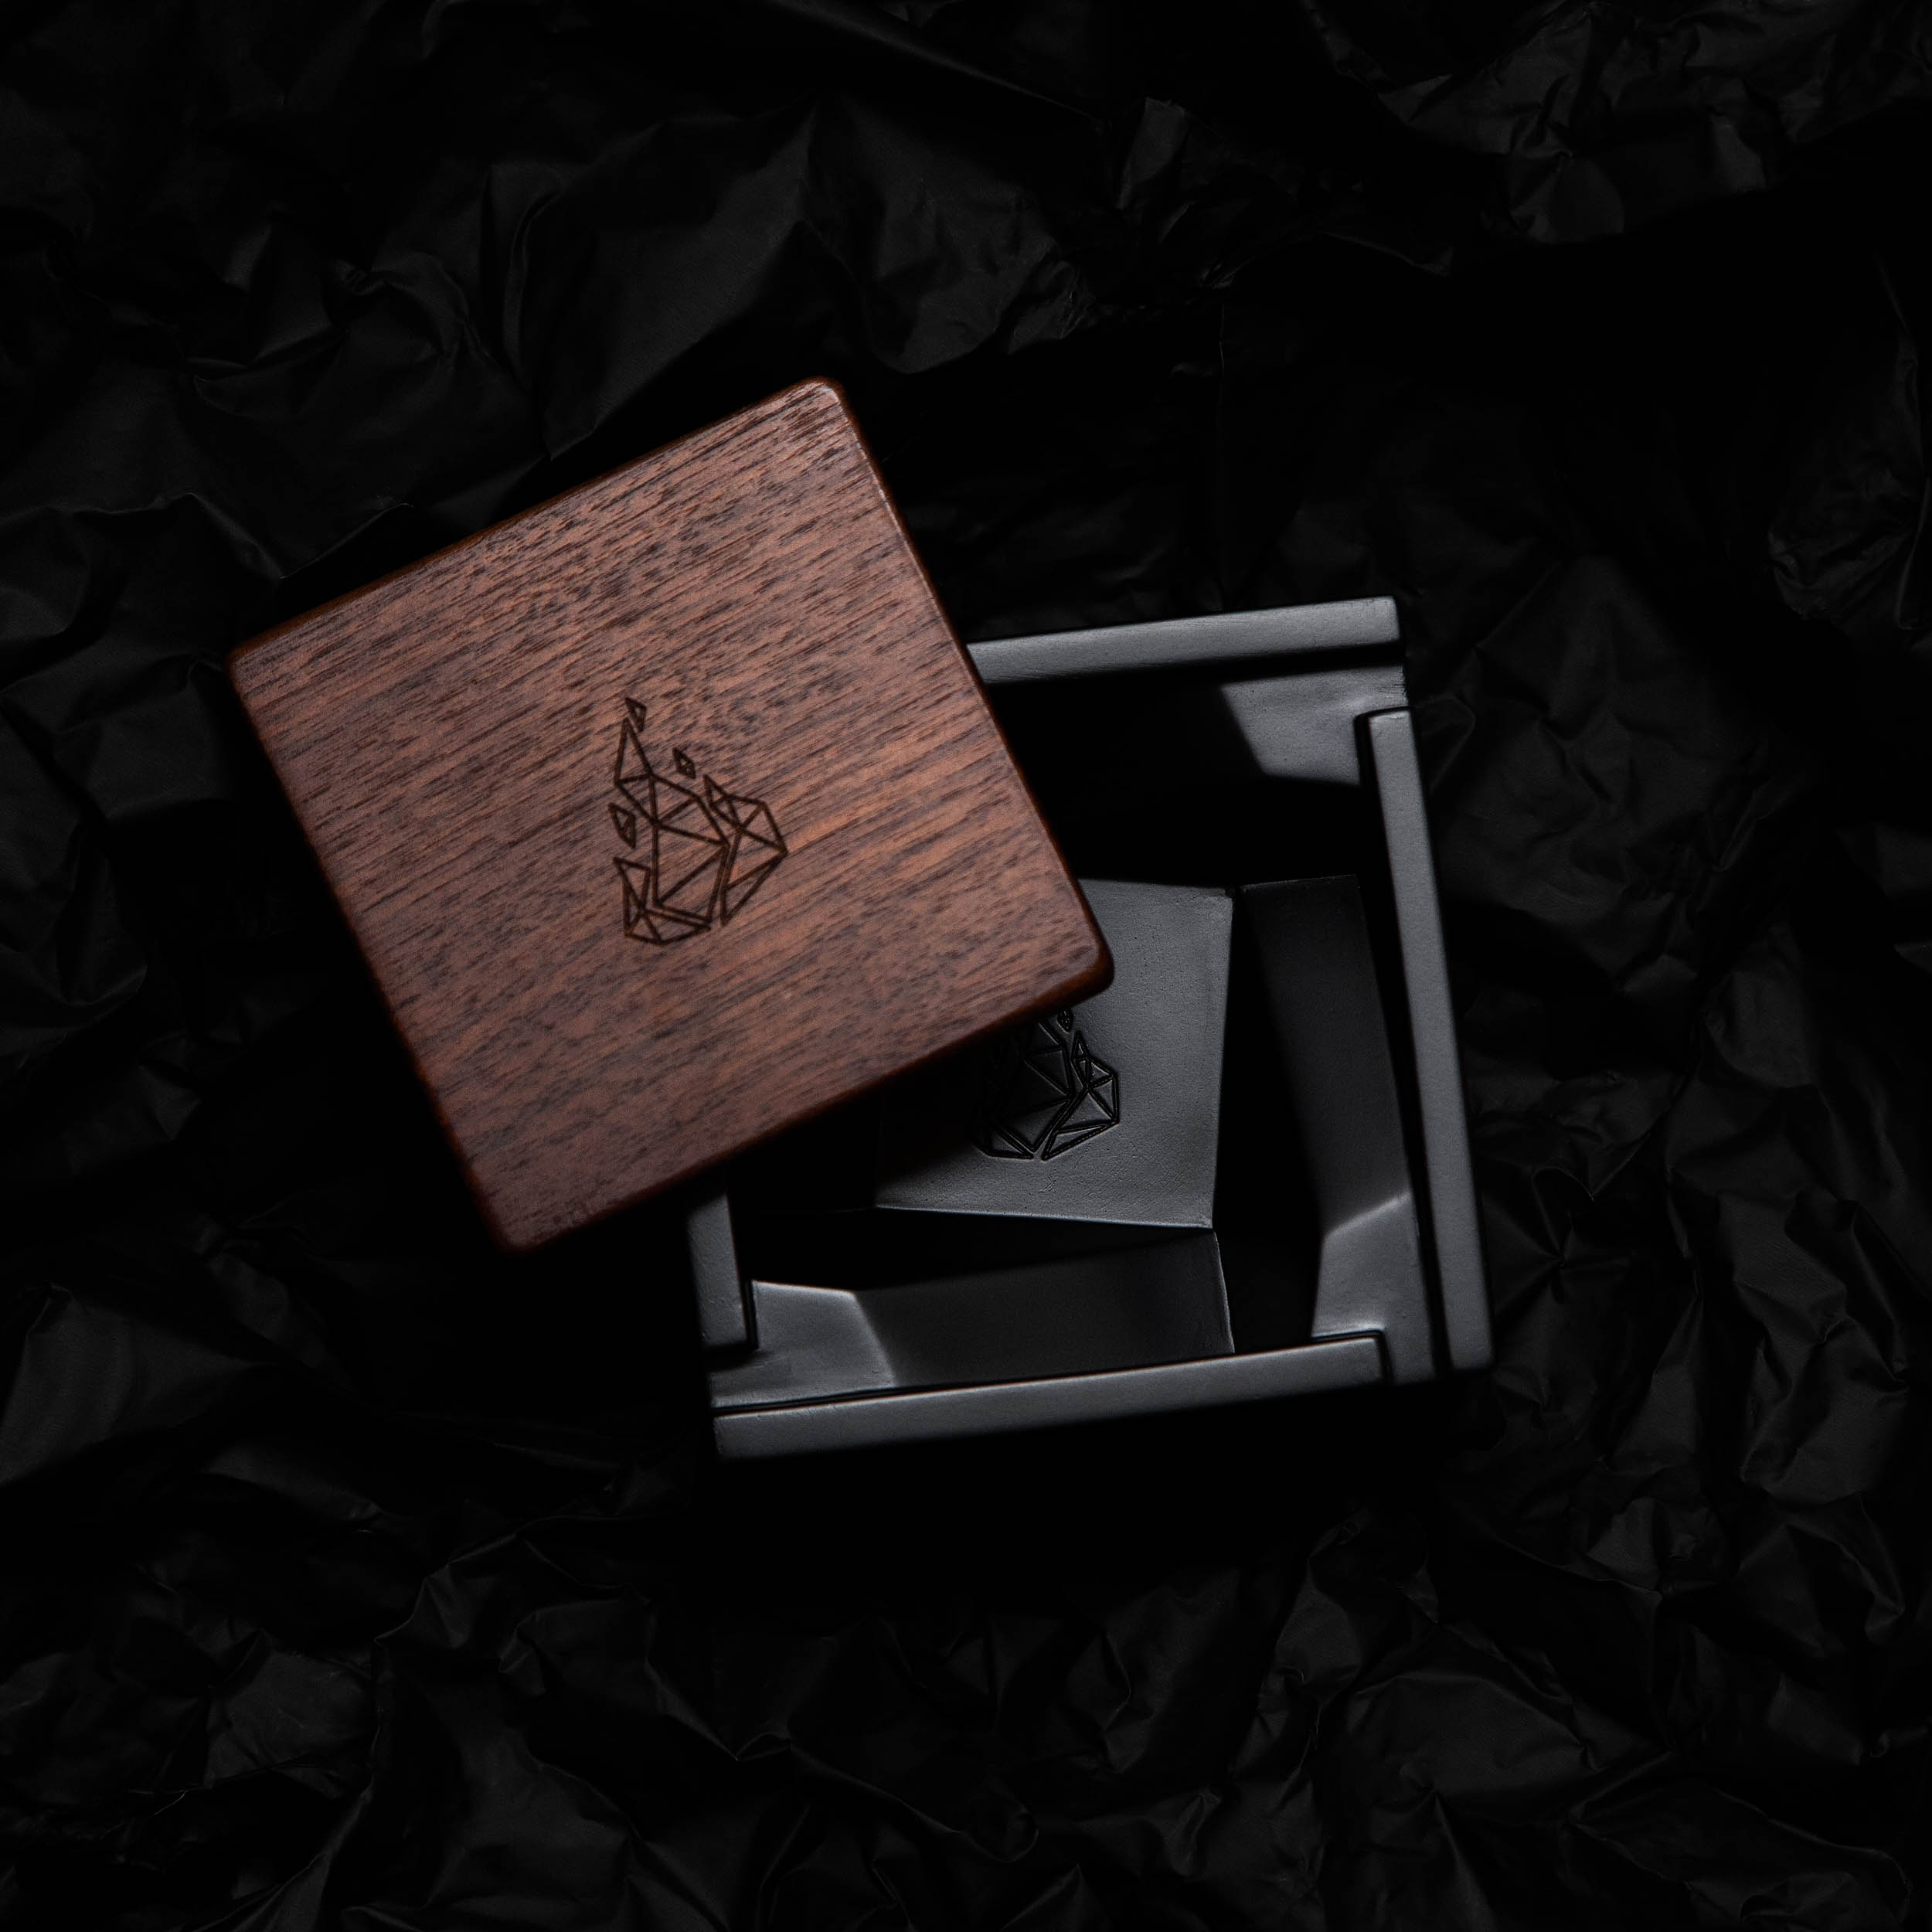 Dark minimal product photogarphy for BRNT of Briq ashtray